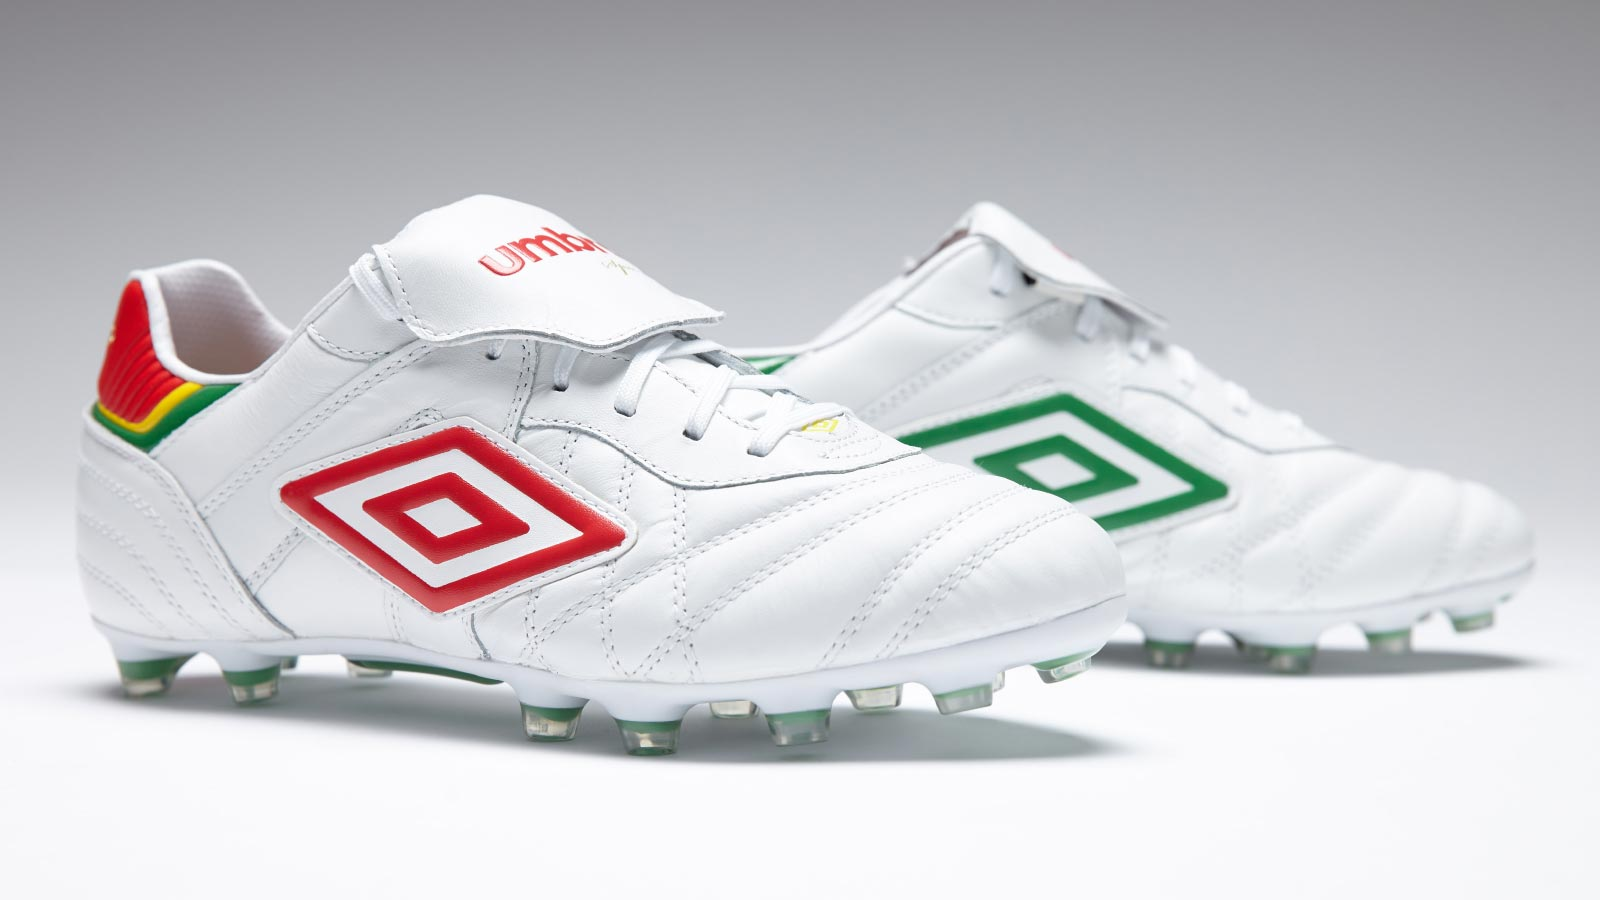 wholesale dealer 0121c 5b99e Umbro Speciali Eternal Pepe Edition - White   Red   Green   Yellow